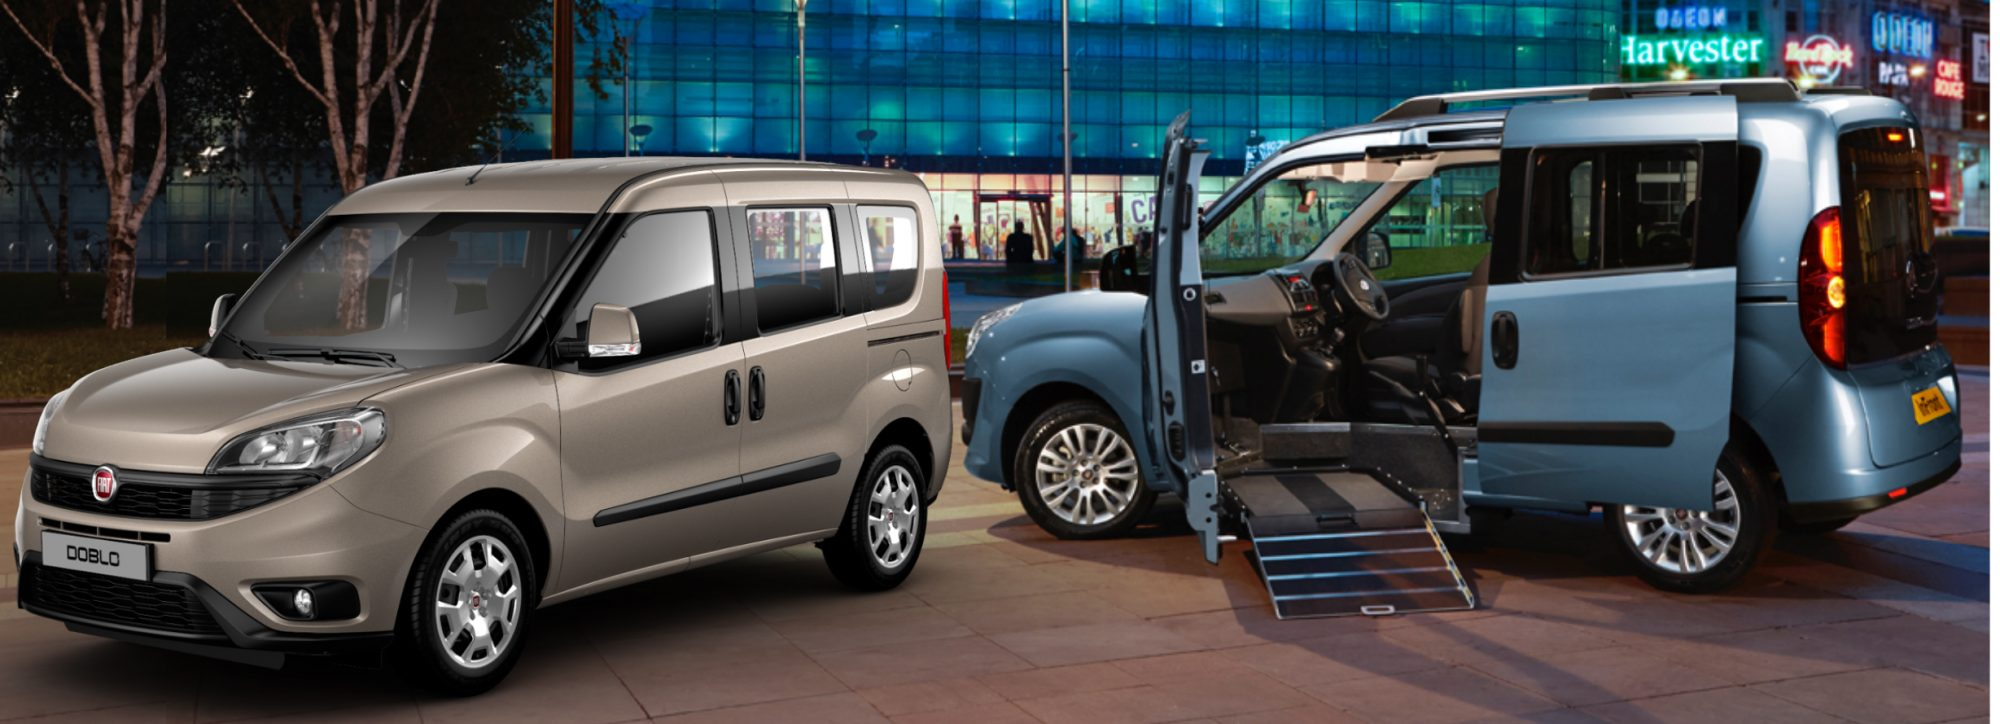 Get a Bespoke Approach to Fitting An Accessible Vehicle Around Your Lifestyle